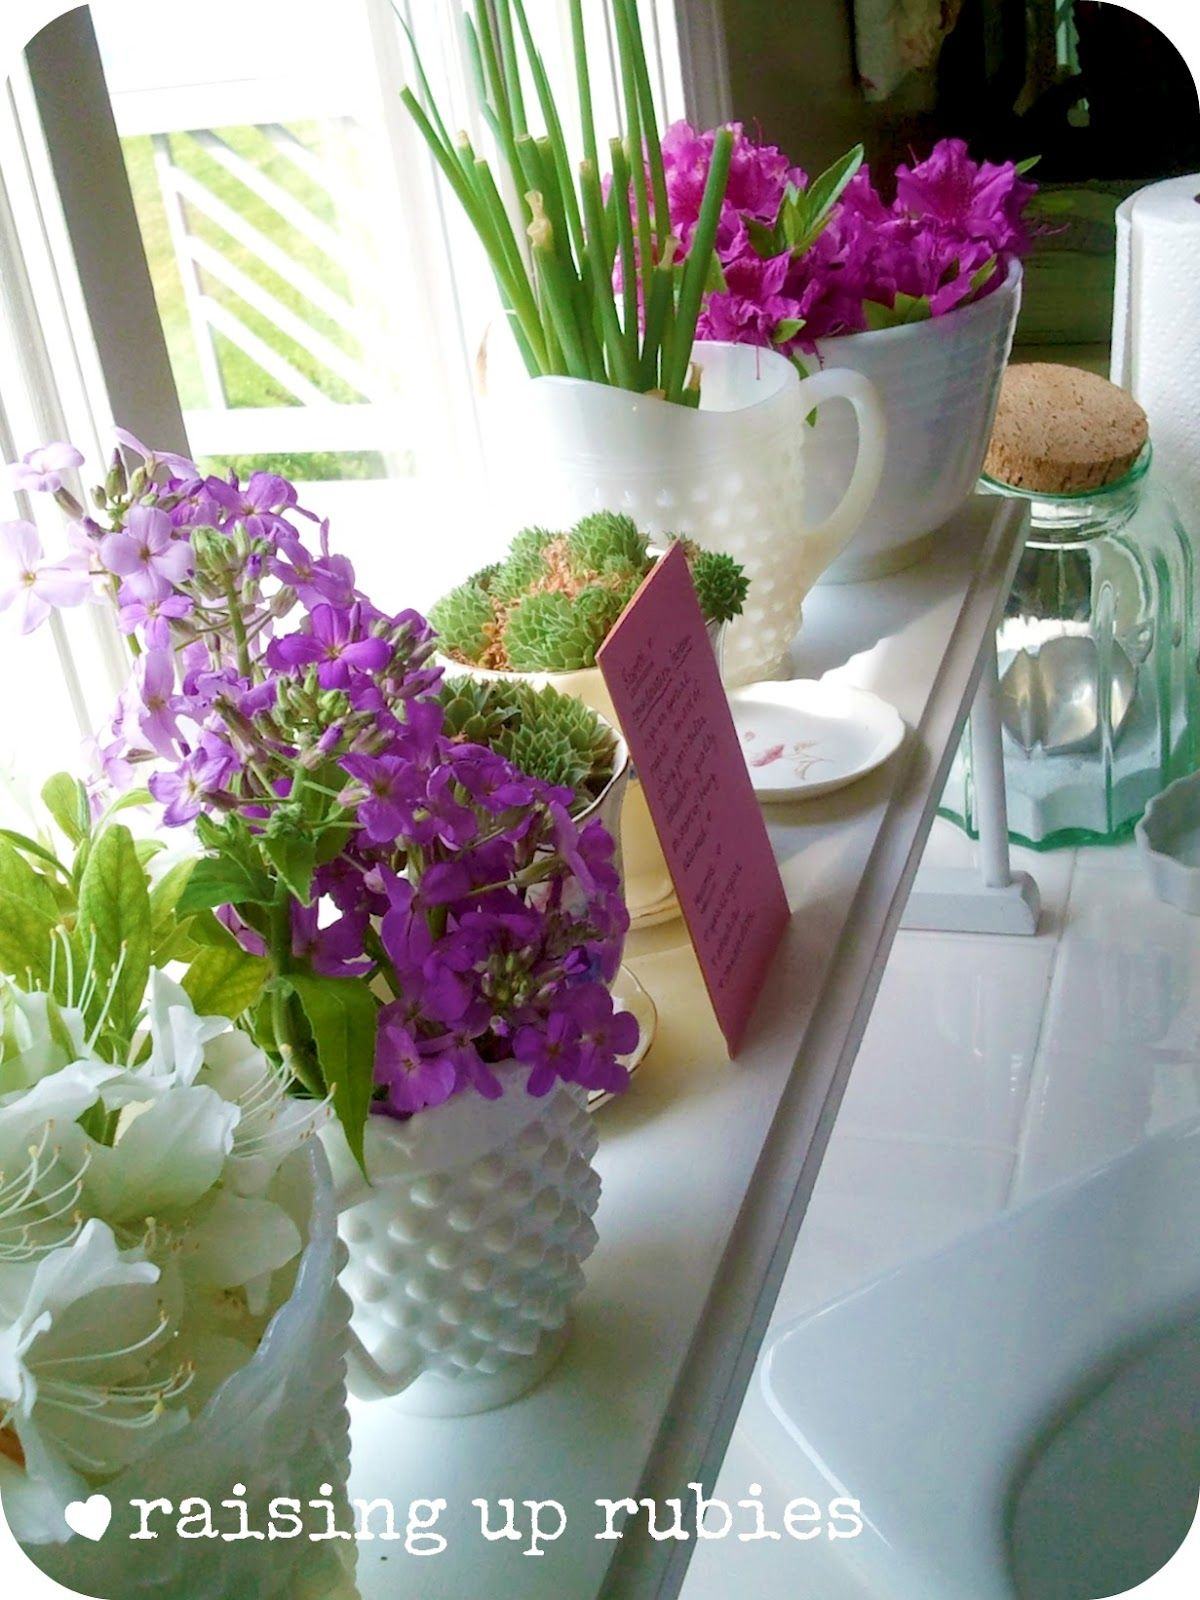 Kitchen window ledge  raising up rubies love this kitchen window ledge for herbs flowers